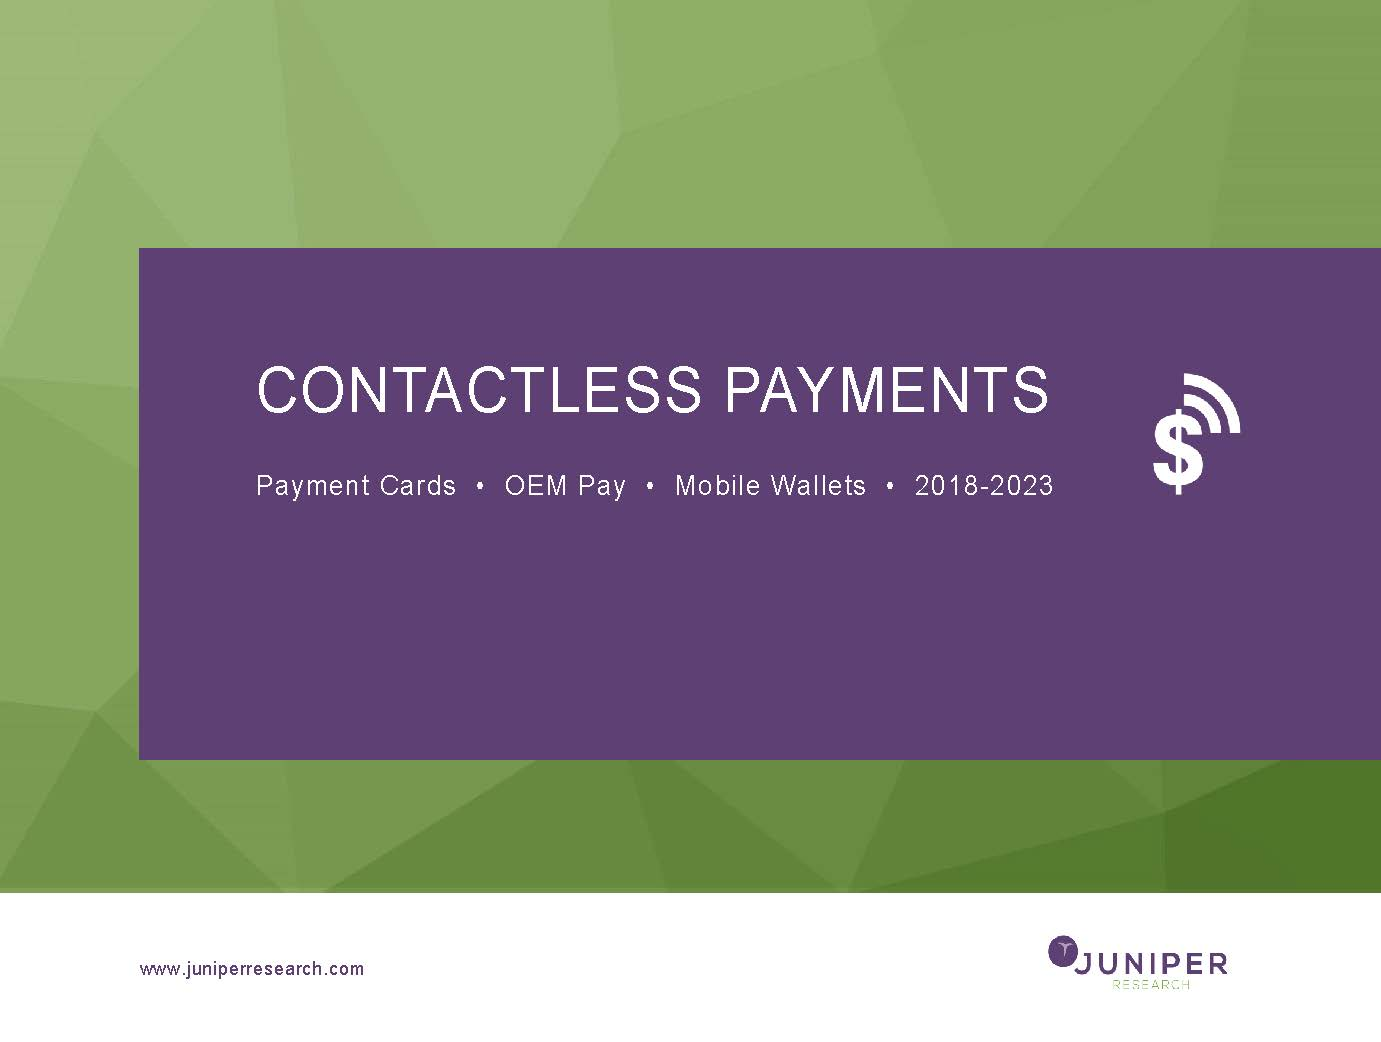 Contactless Wallets & OEM Pay: 2018 - 2023